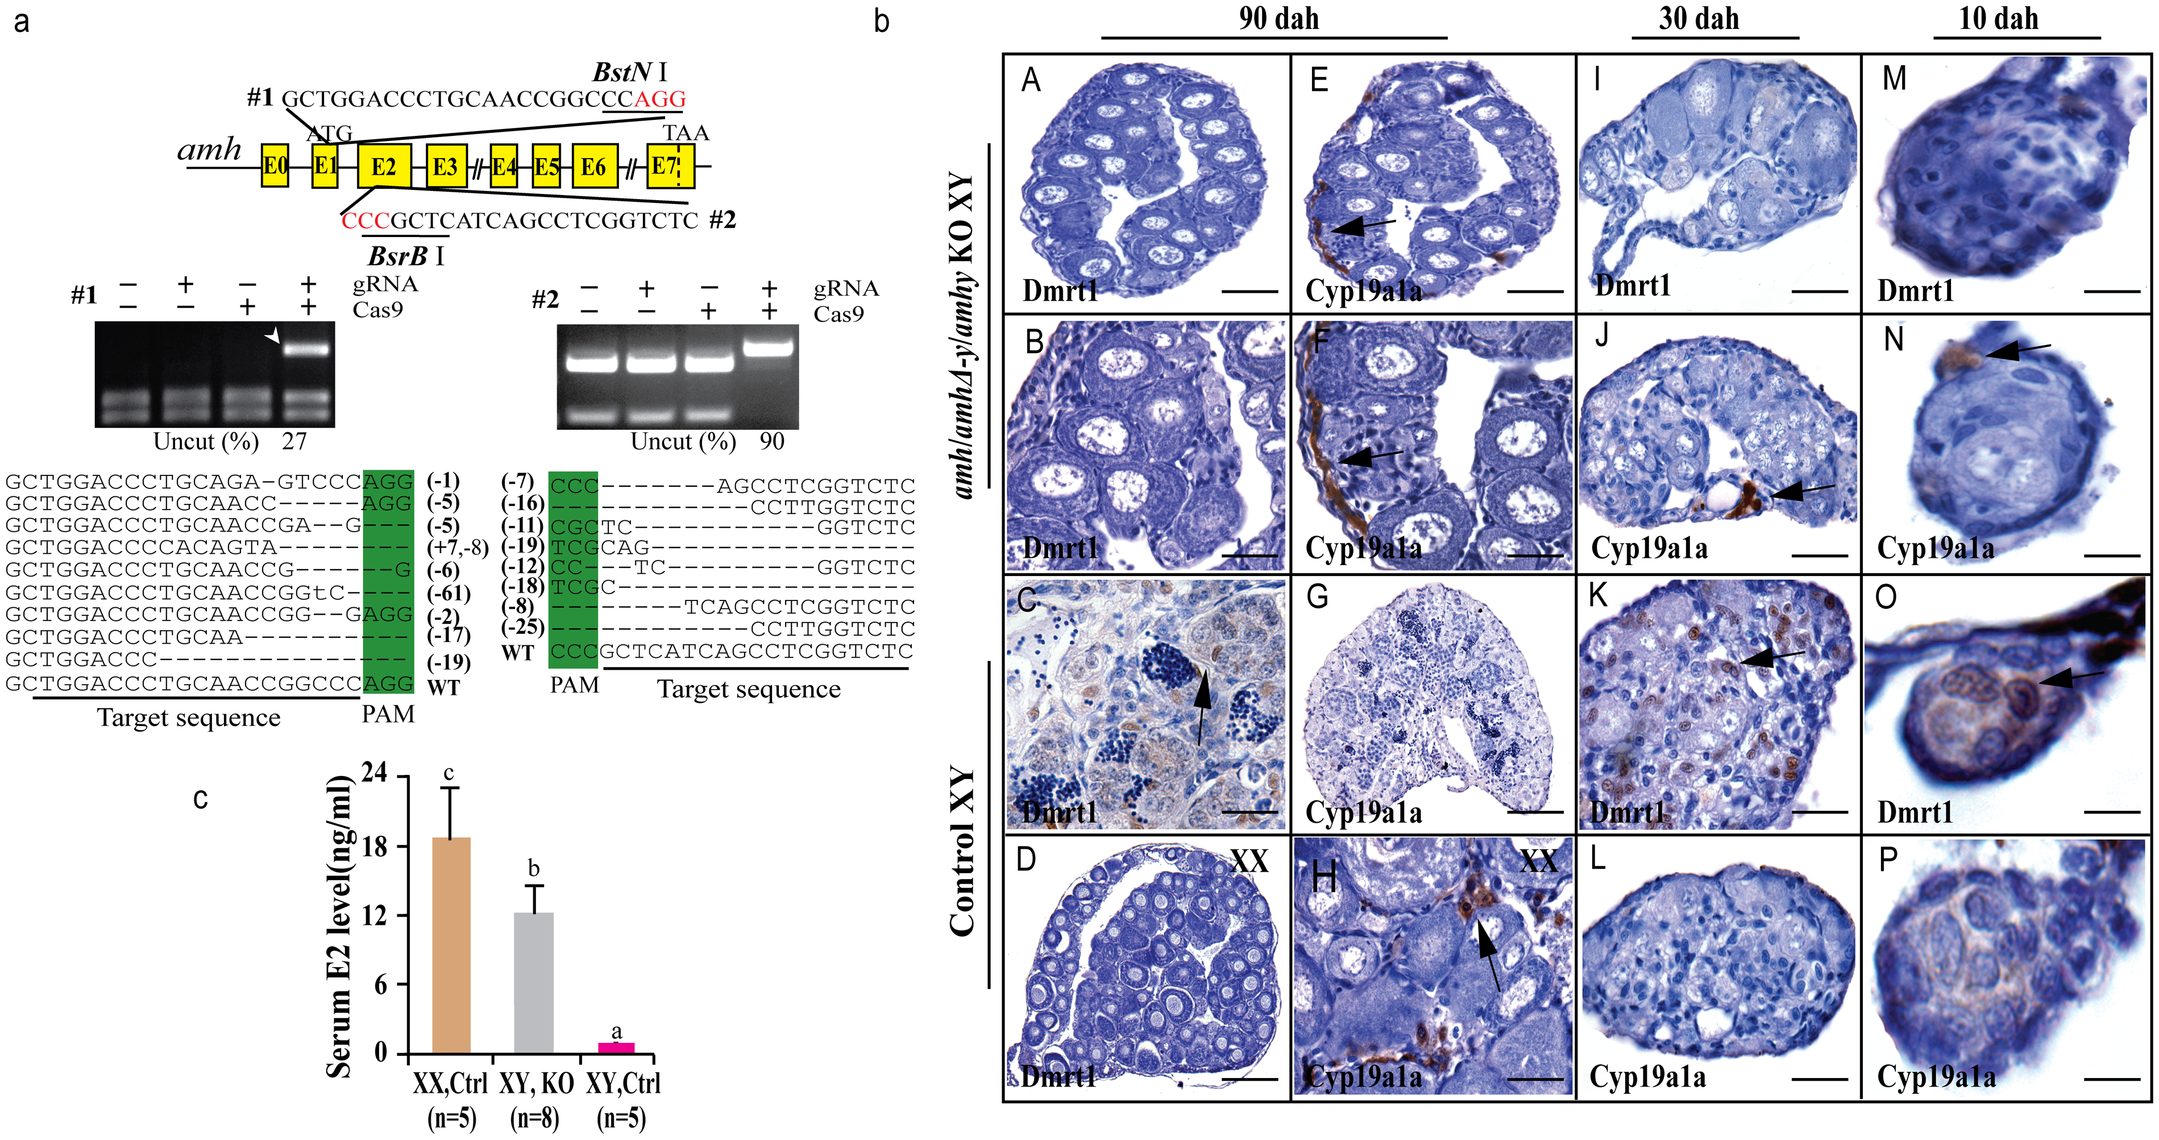 Knockout of Amhy/AmhΔ-y/Amh by CRISPR/Cas9 resulted in male to female sex reversal in F<sub>0</sub> XY fish.